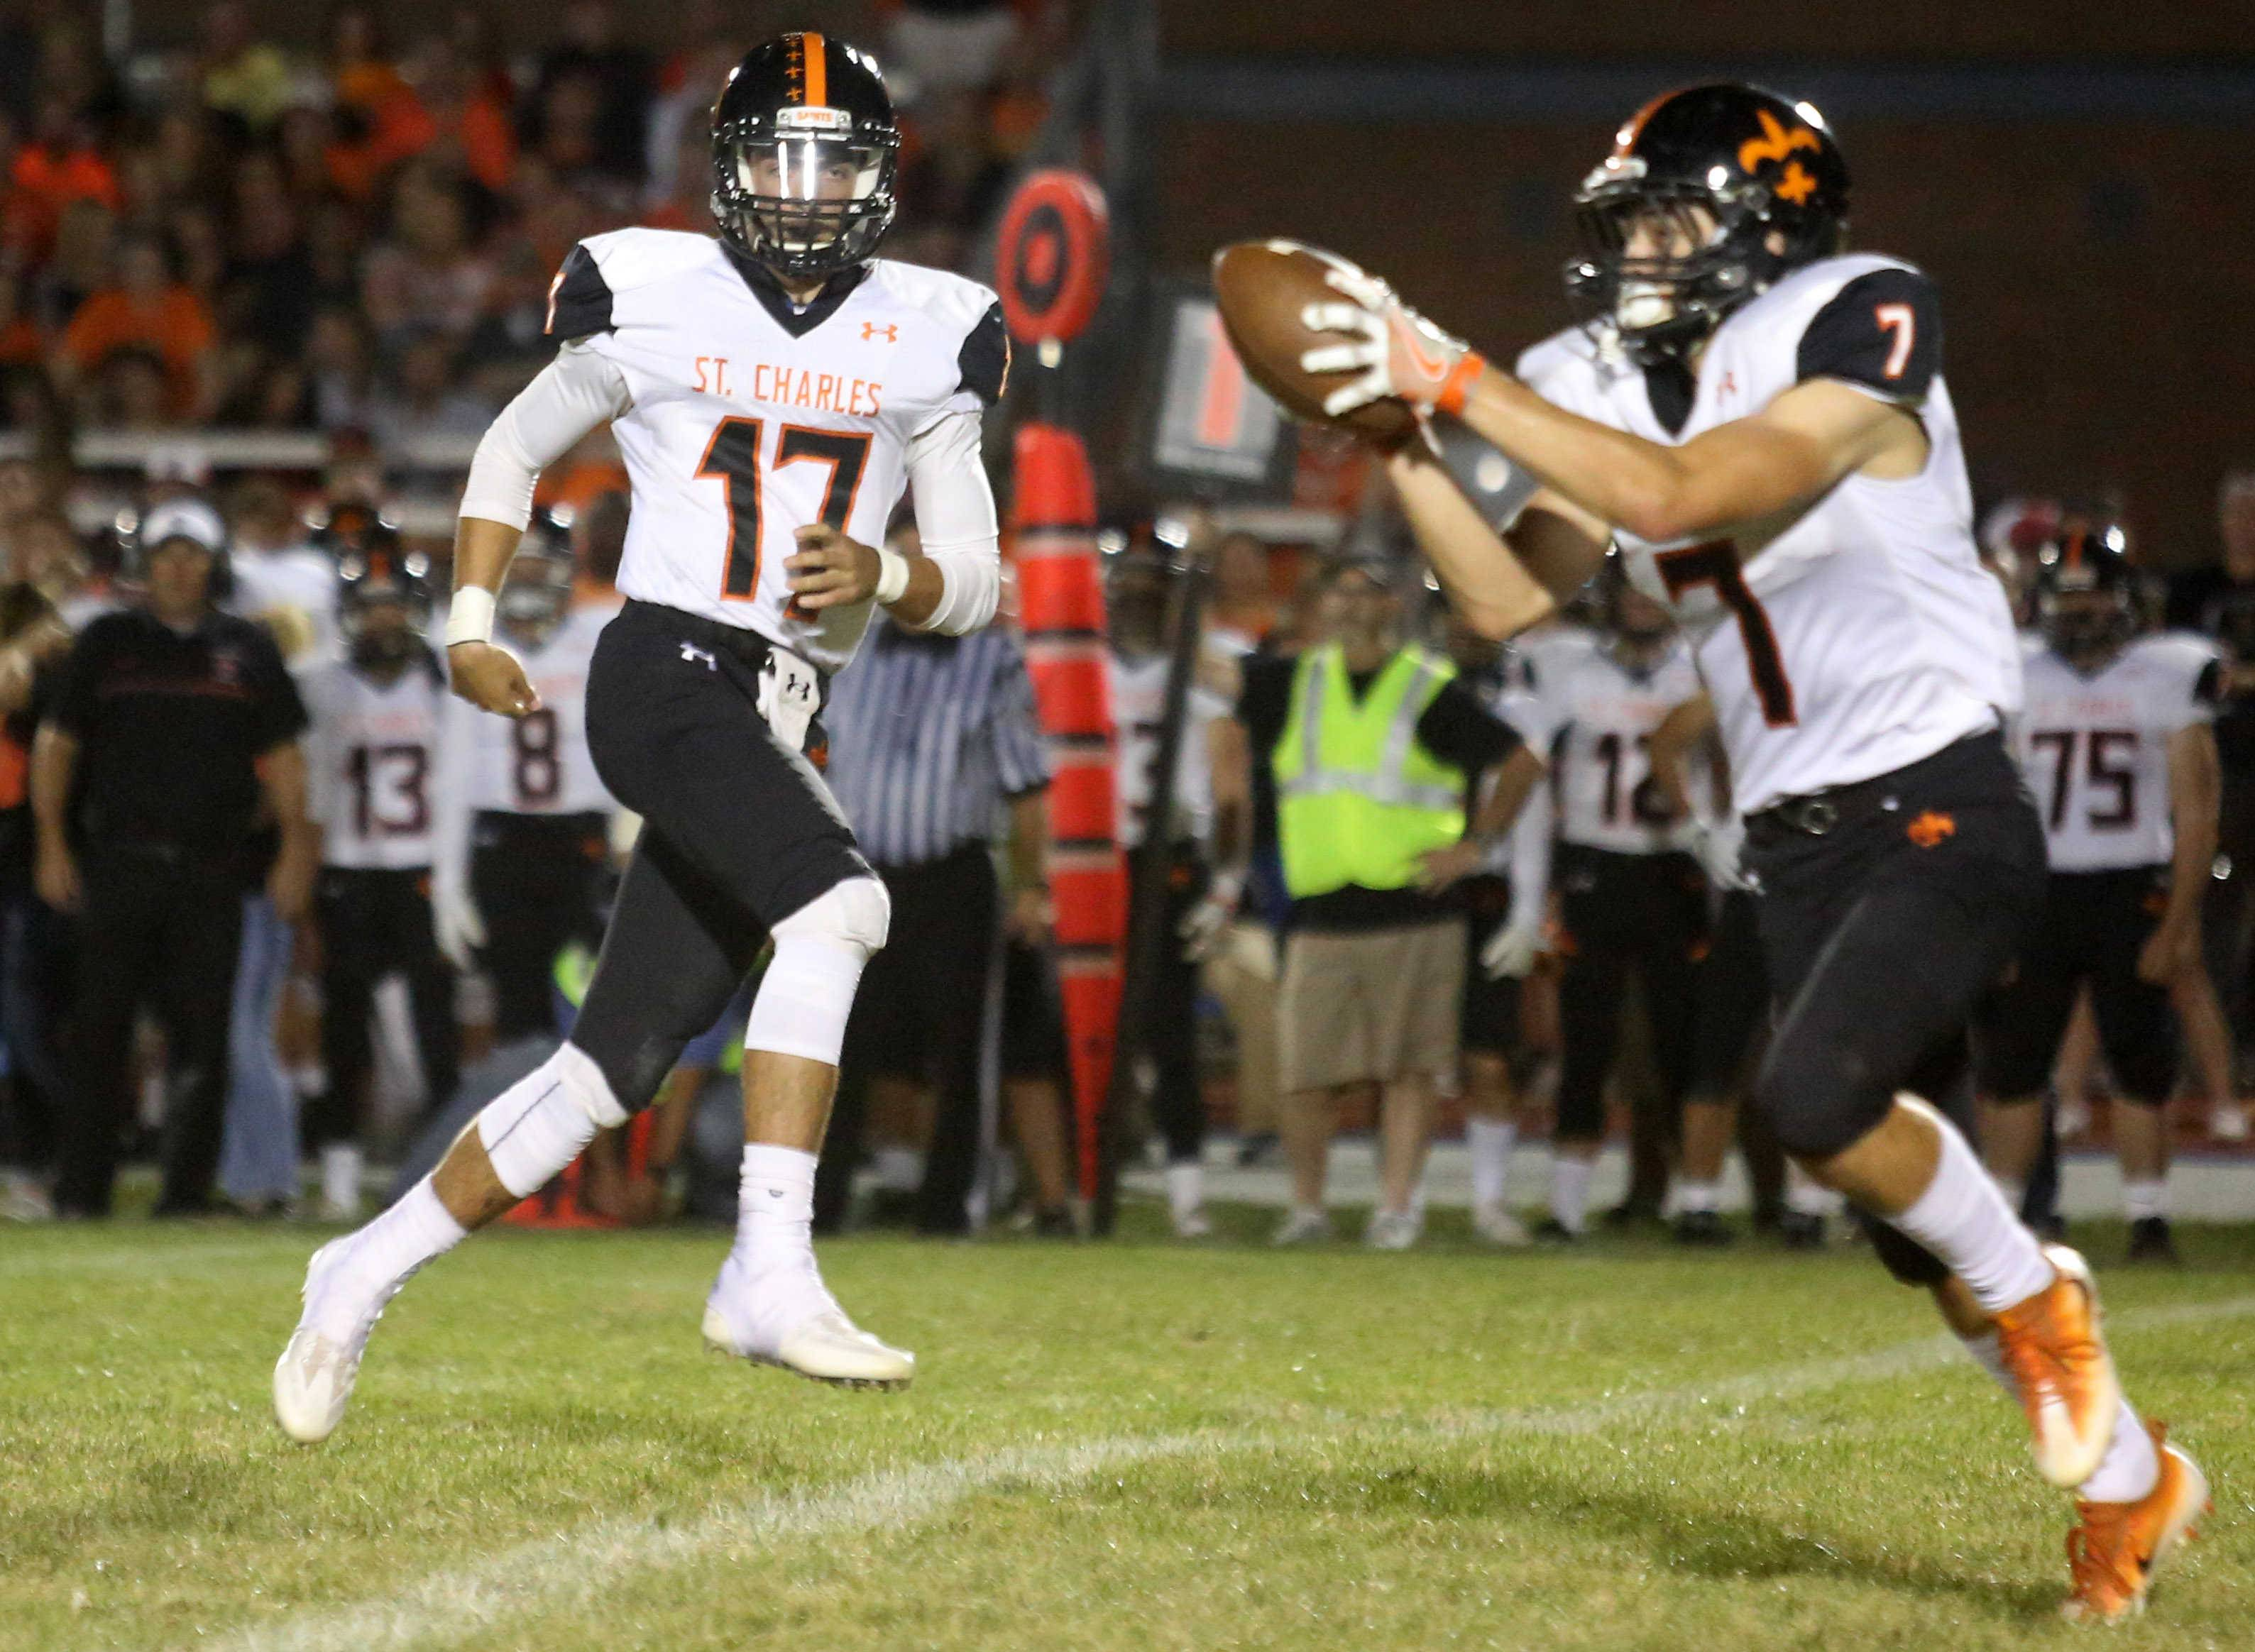 St. Charles East quarterback Zachary Mitchell pitches the ball to Nicholas Garlisch during the Crosstown Classic football game at St. Charles North Friday night.